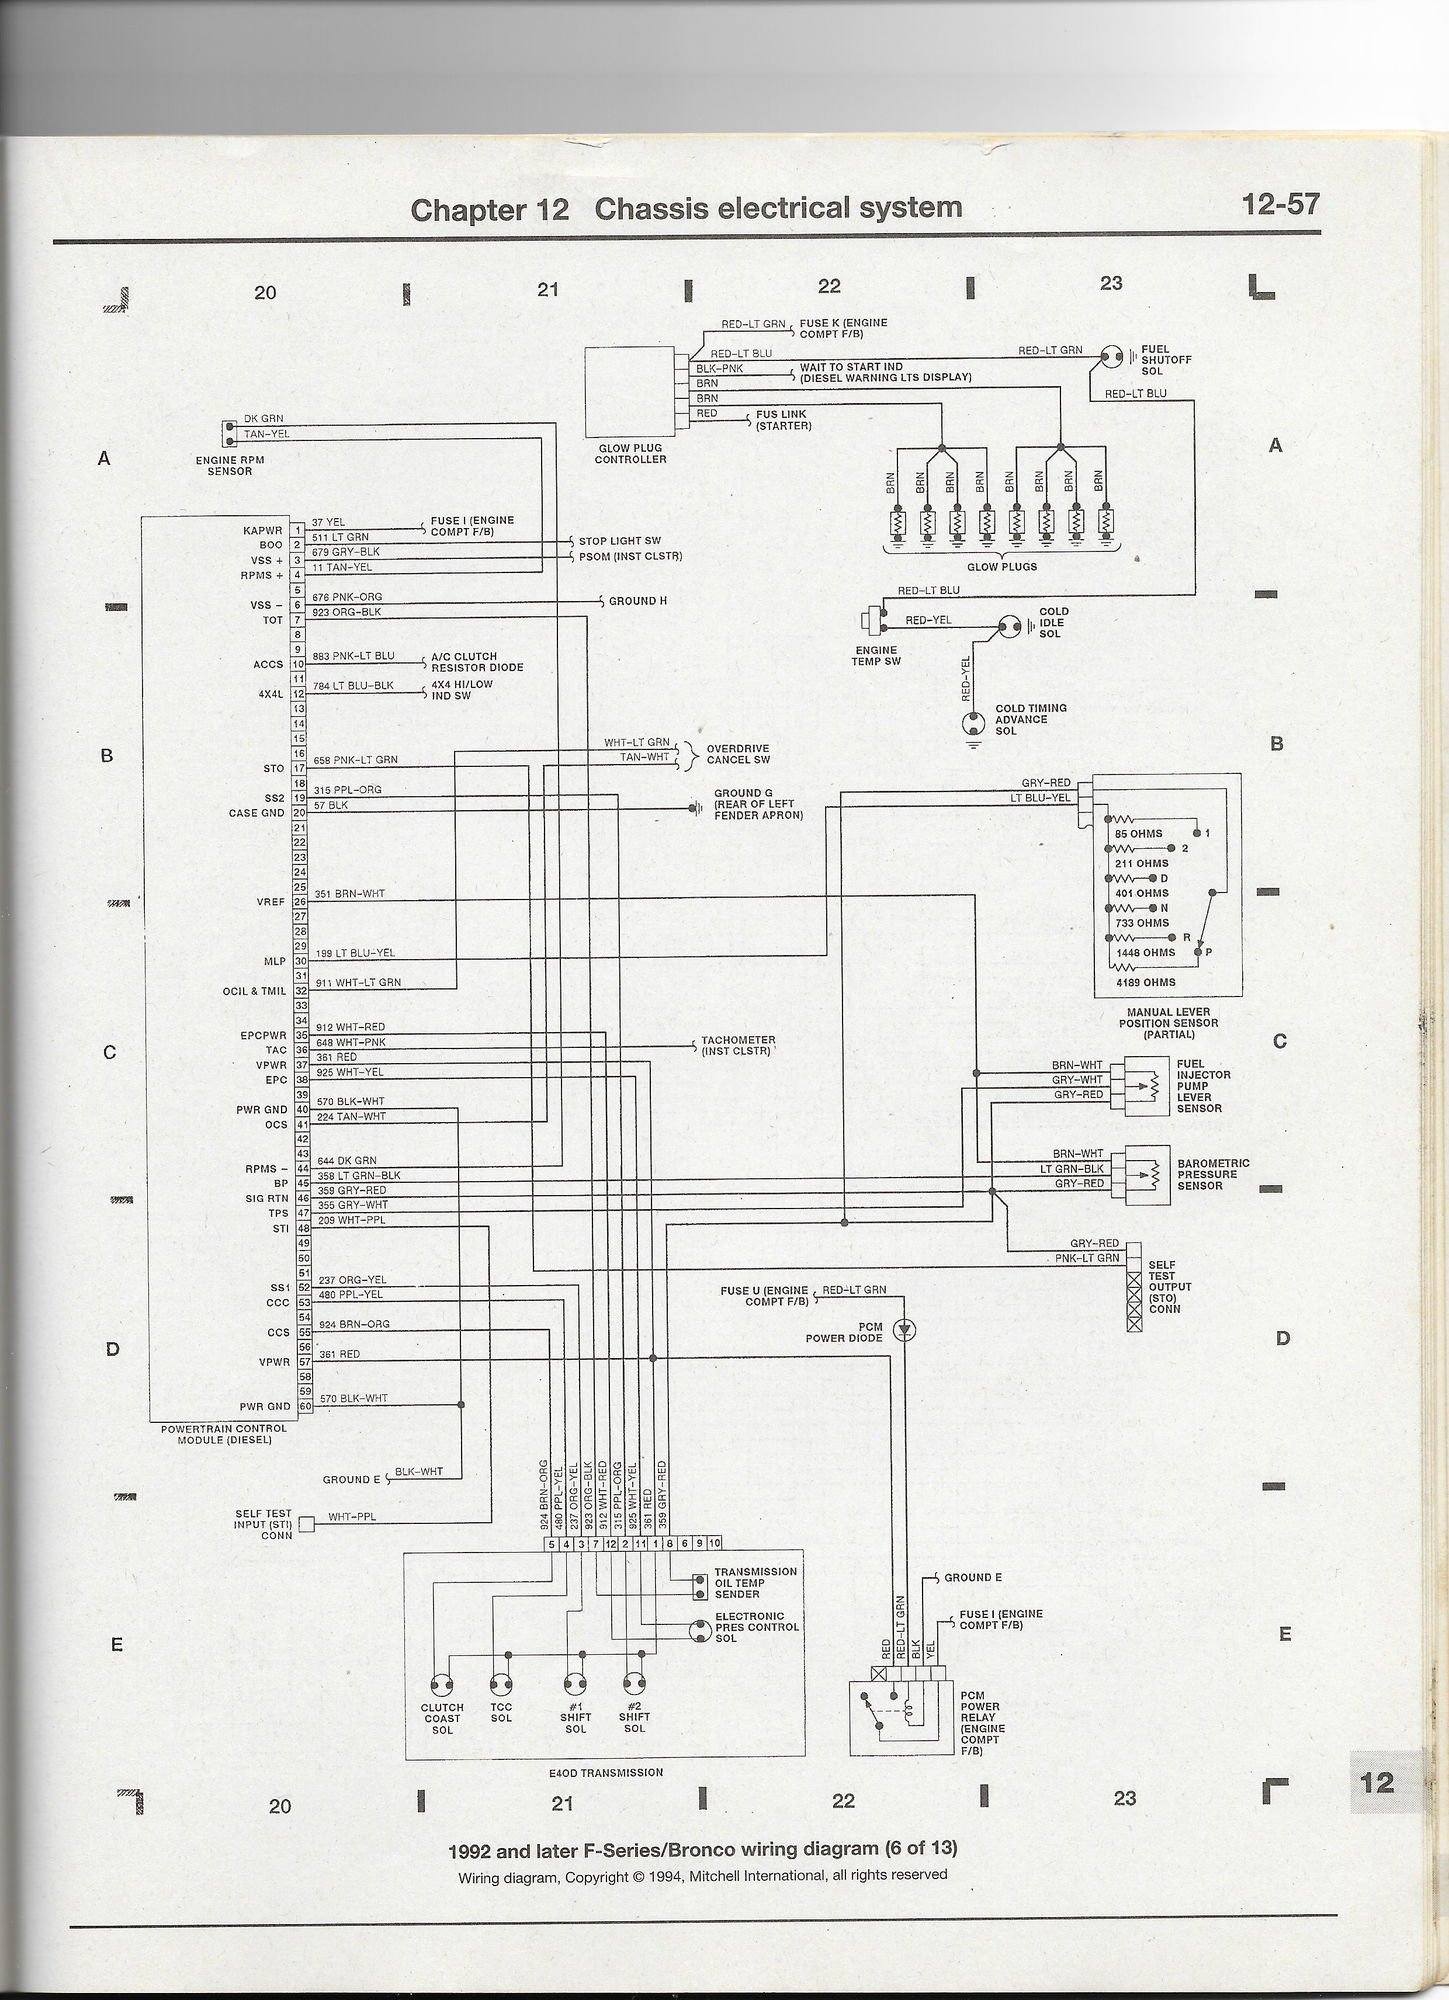 hight resolution of powertrain transmission e40d wiring diagram 4r70w transmission e4od wiring diagram 1992